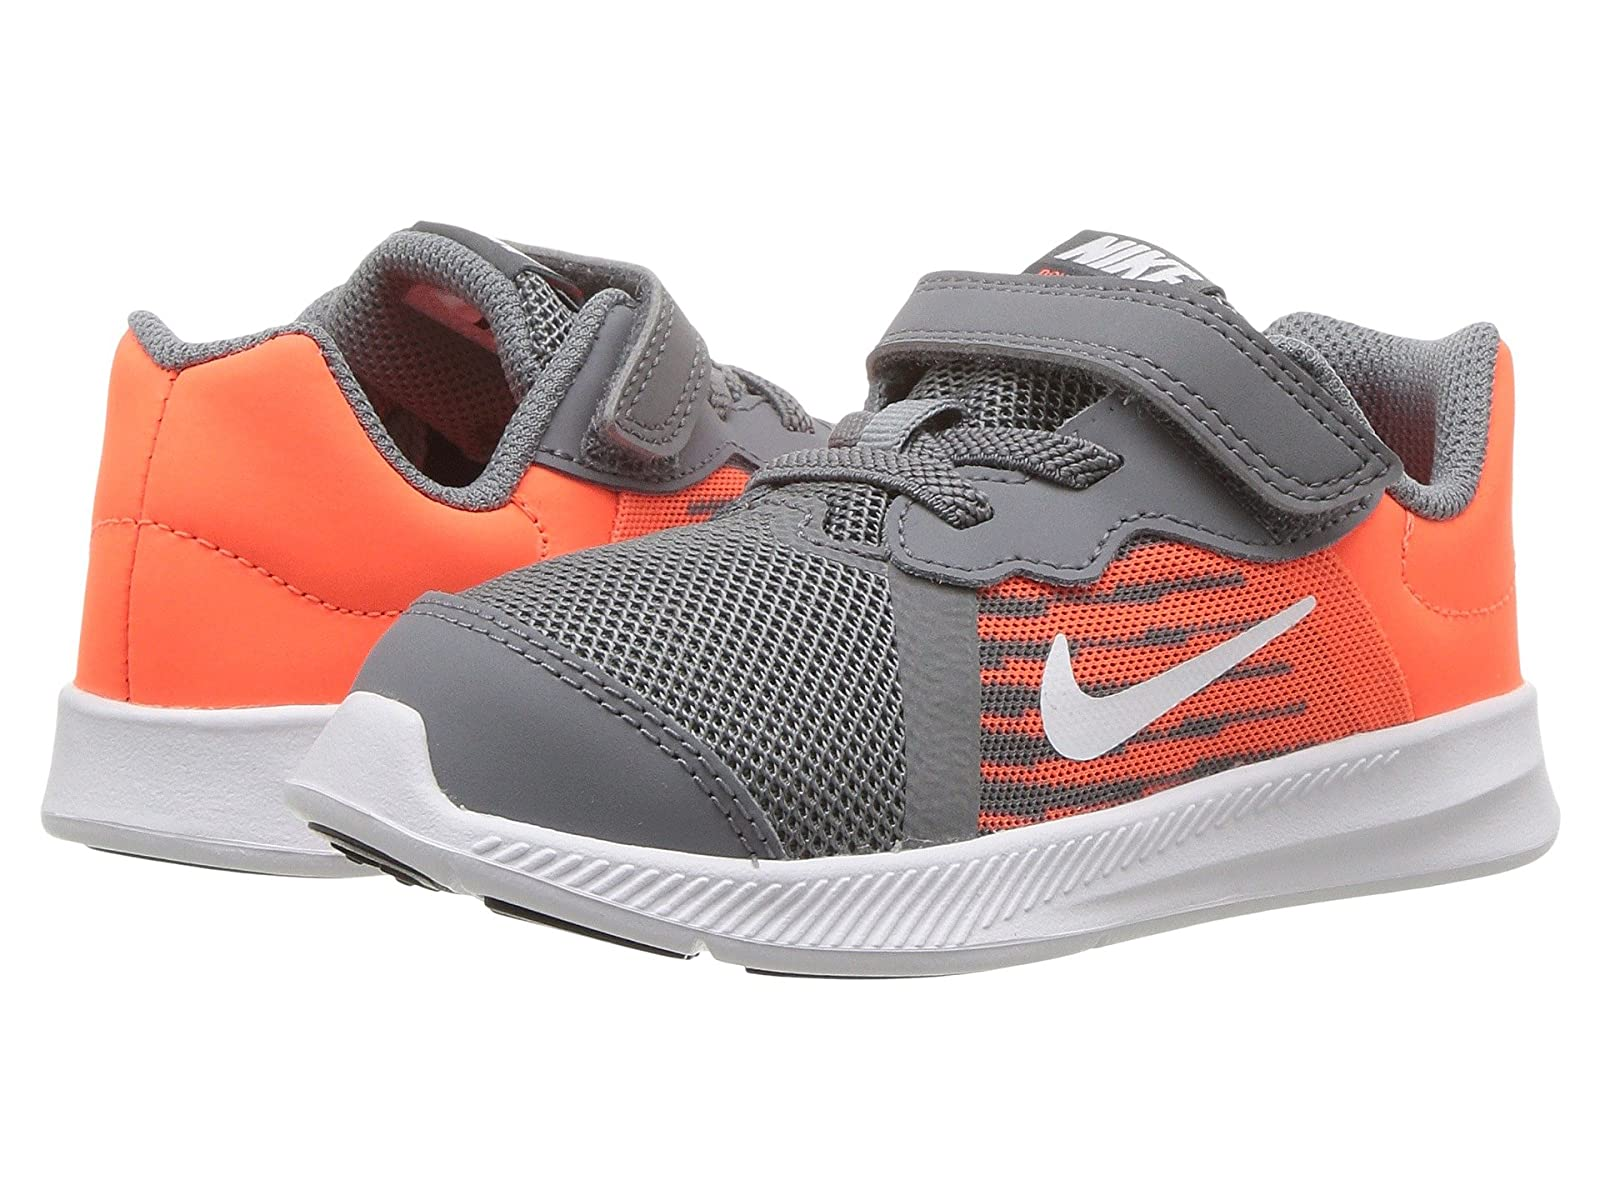 Nike Kids Downshifter brand 8 (Infant/Toddler): brand Downshifter feast :Gentleman/Lady b5109e